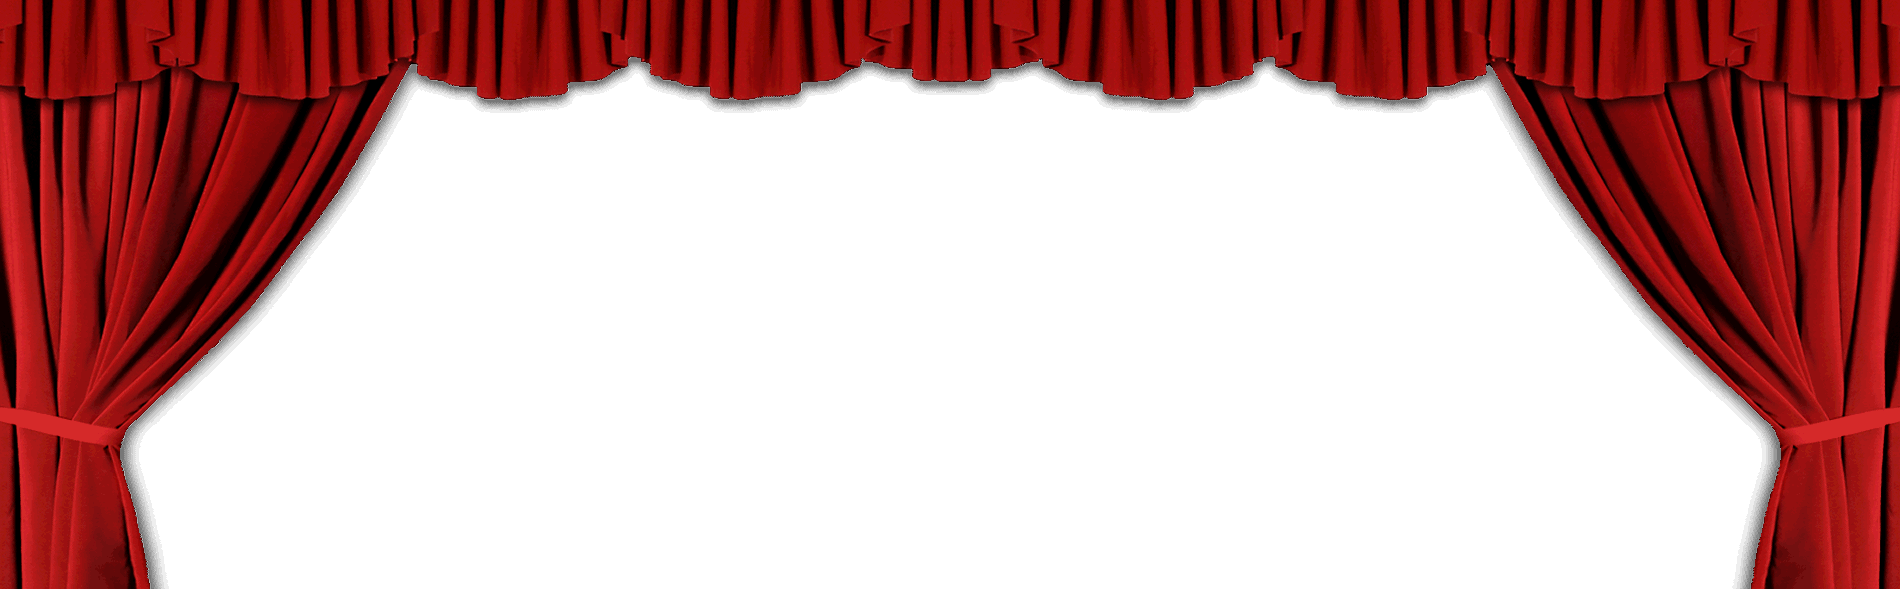 Curtains clipart theatre. Pigeon forge attractions things